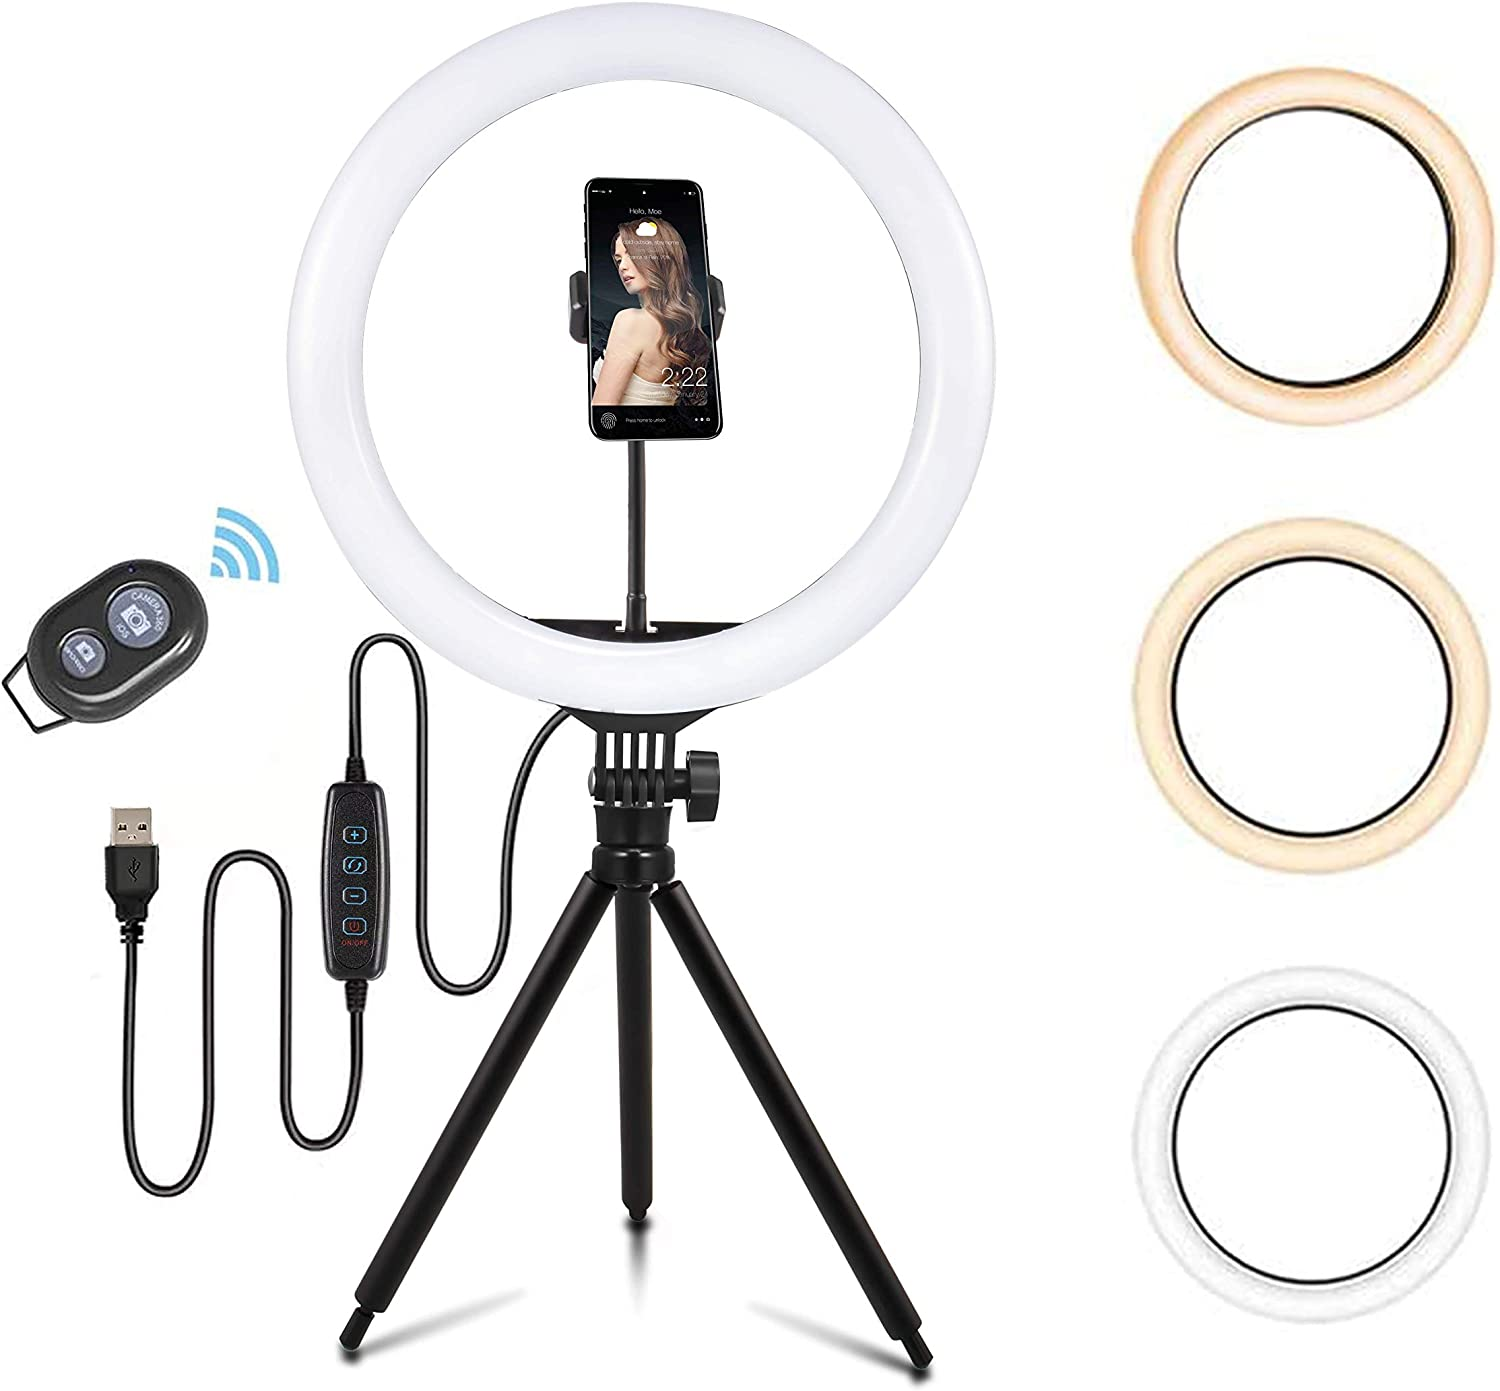 13'' LED Desktop Selfie Ring Light with Tripod Stand & Cell Phone Holder for Live Stream/Makeup, Dimmable Desk Makeup Ring Light for YouTube Video/Photography Compatible for iPhone and Android